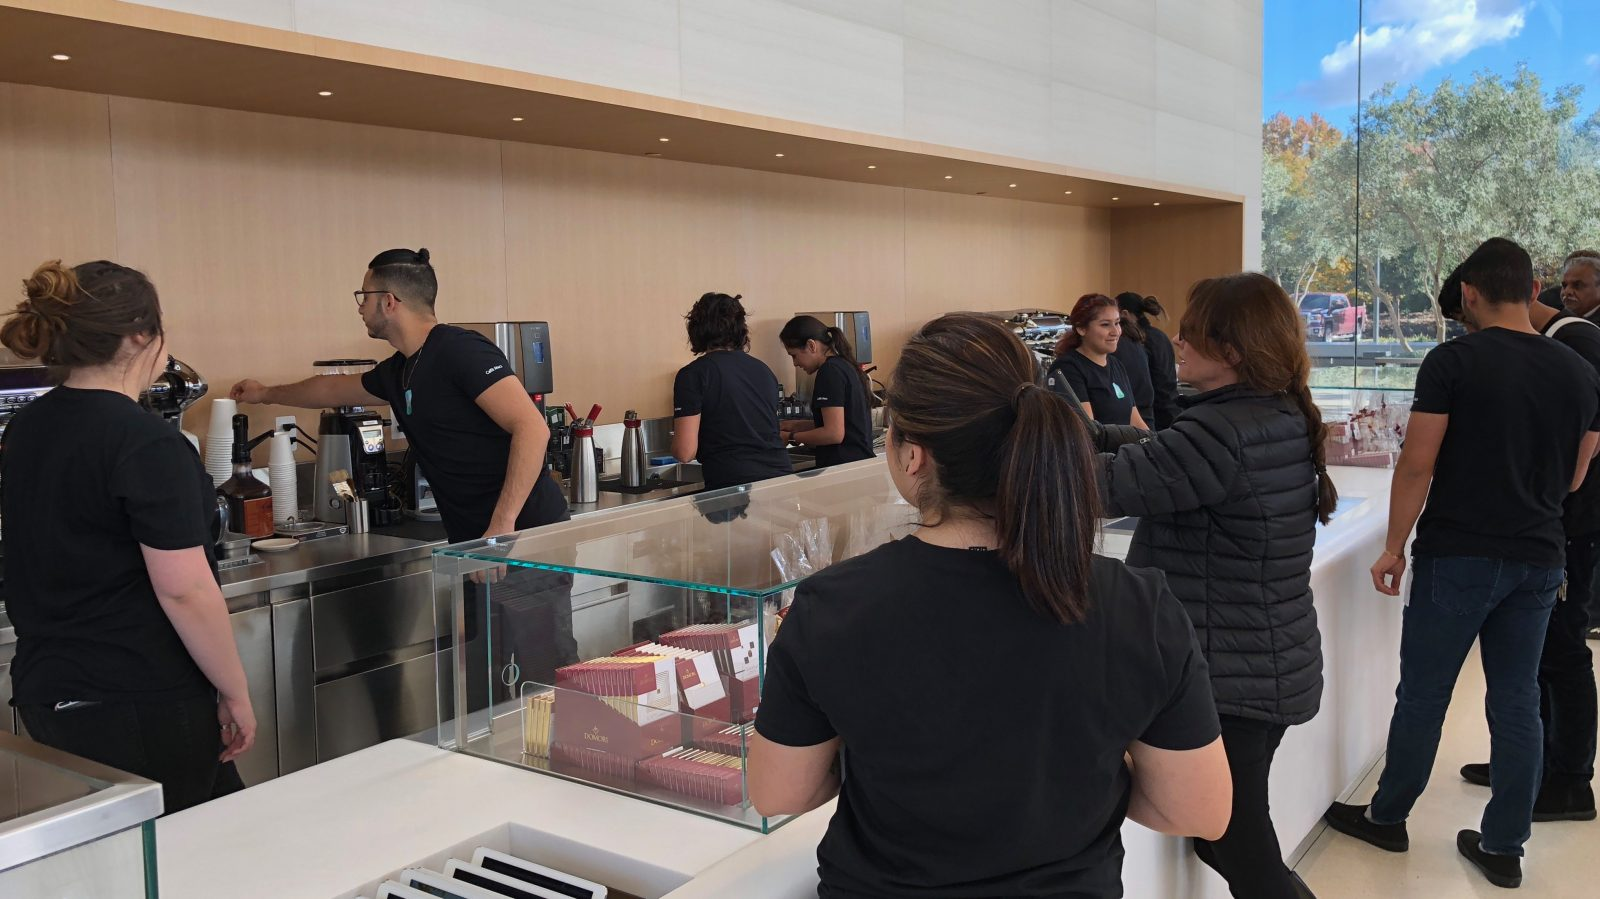 d18a8d93 Here's everything you can buy at Apple Park's Visitor Center [Gallery]